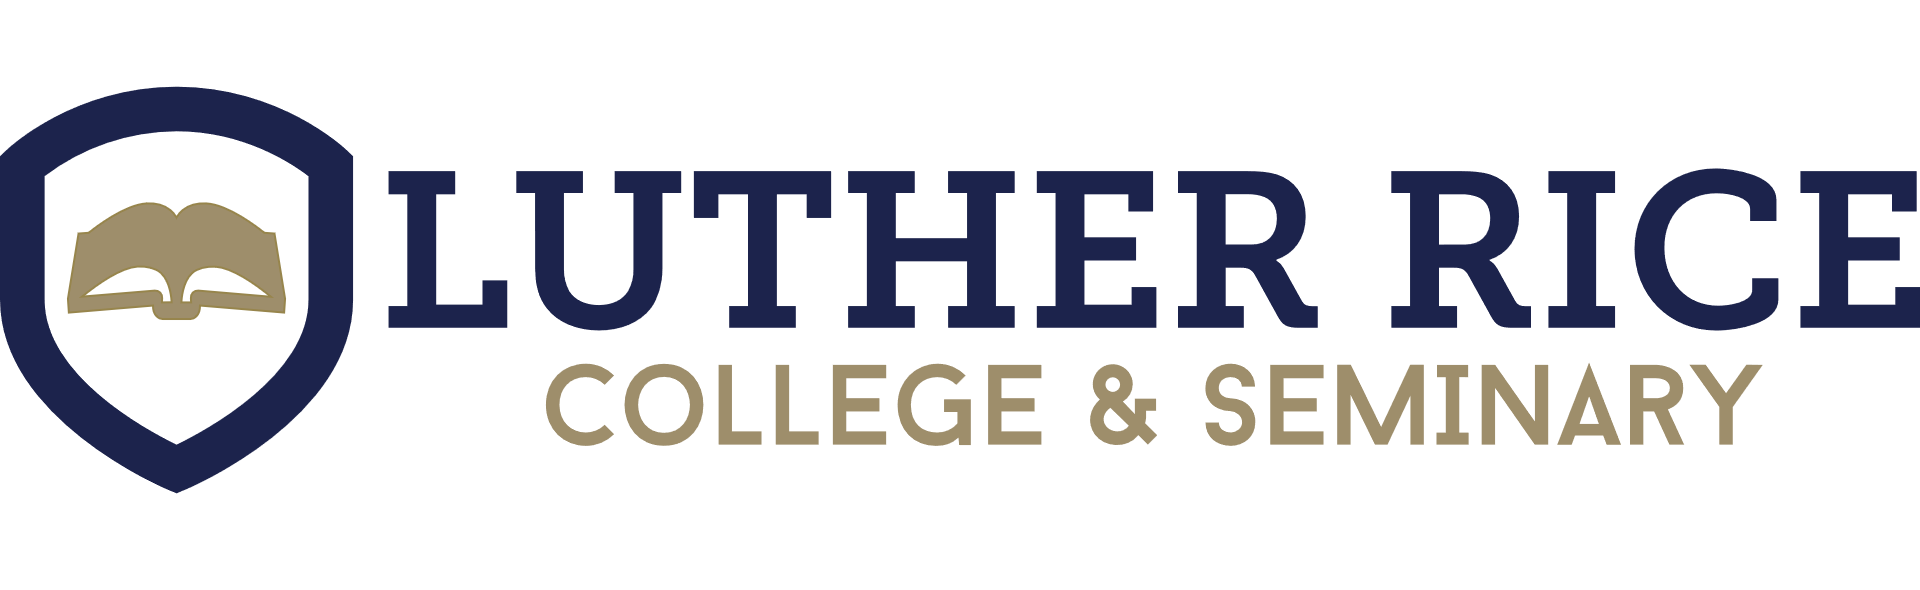 luther-rice-logo